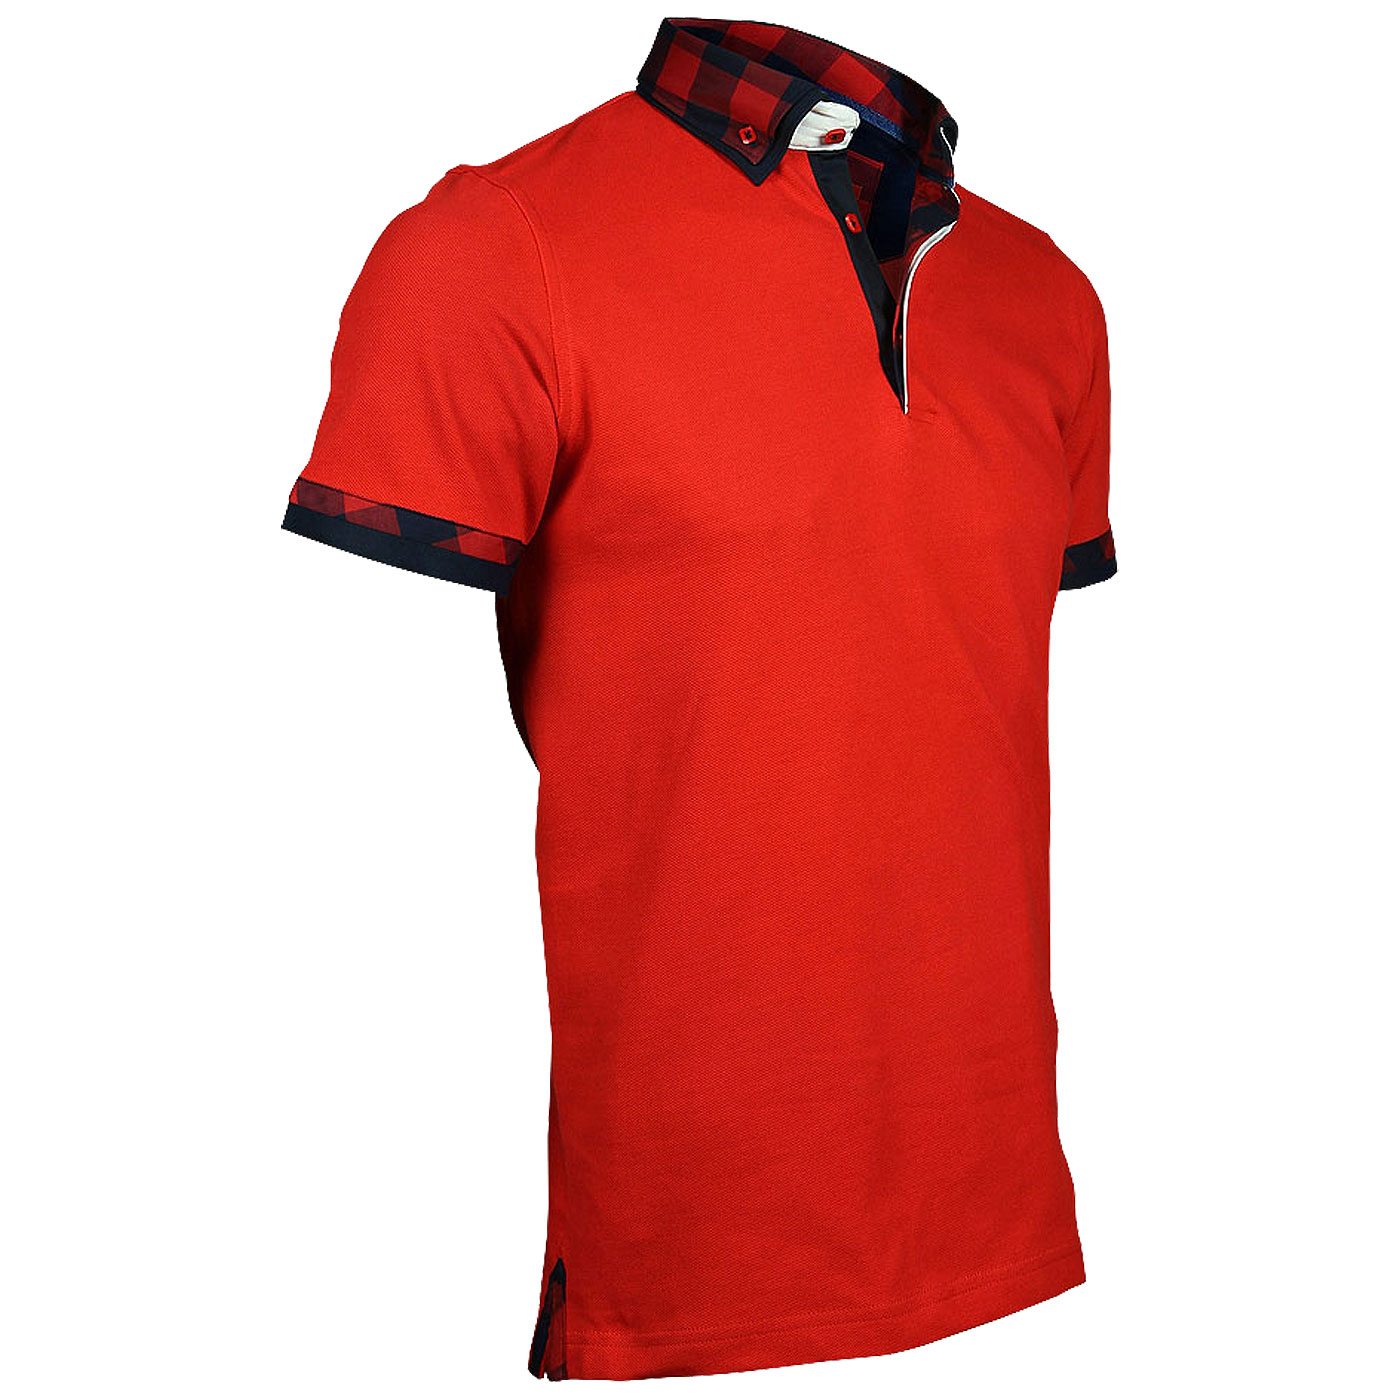 polo rouge avec col chemise